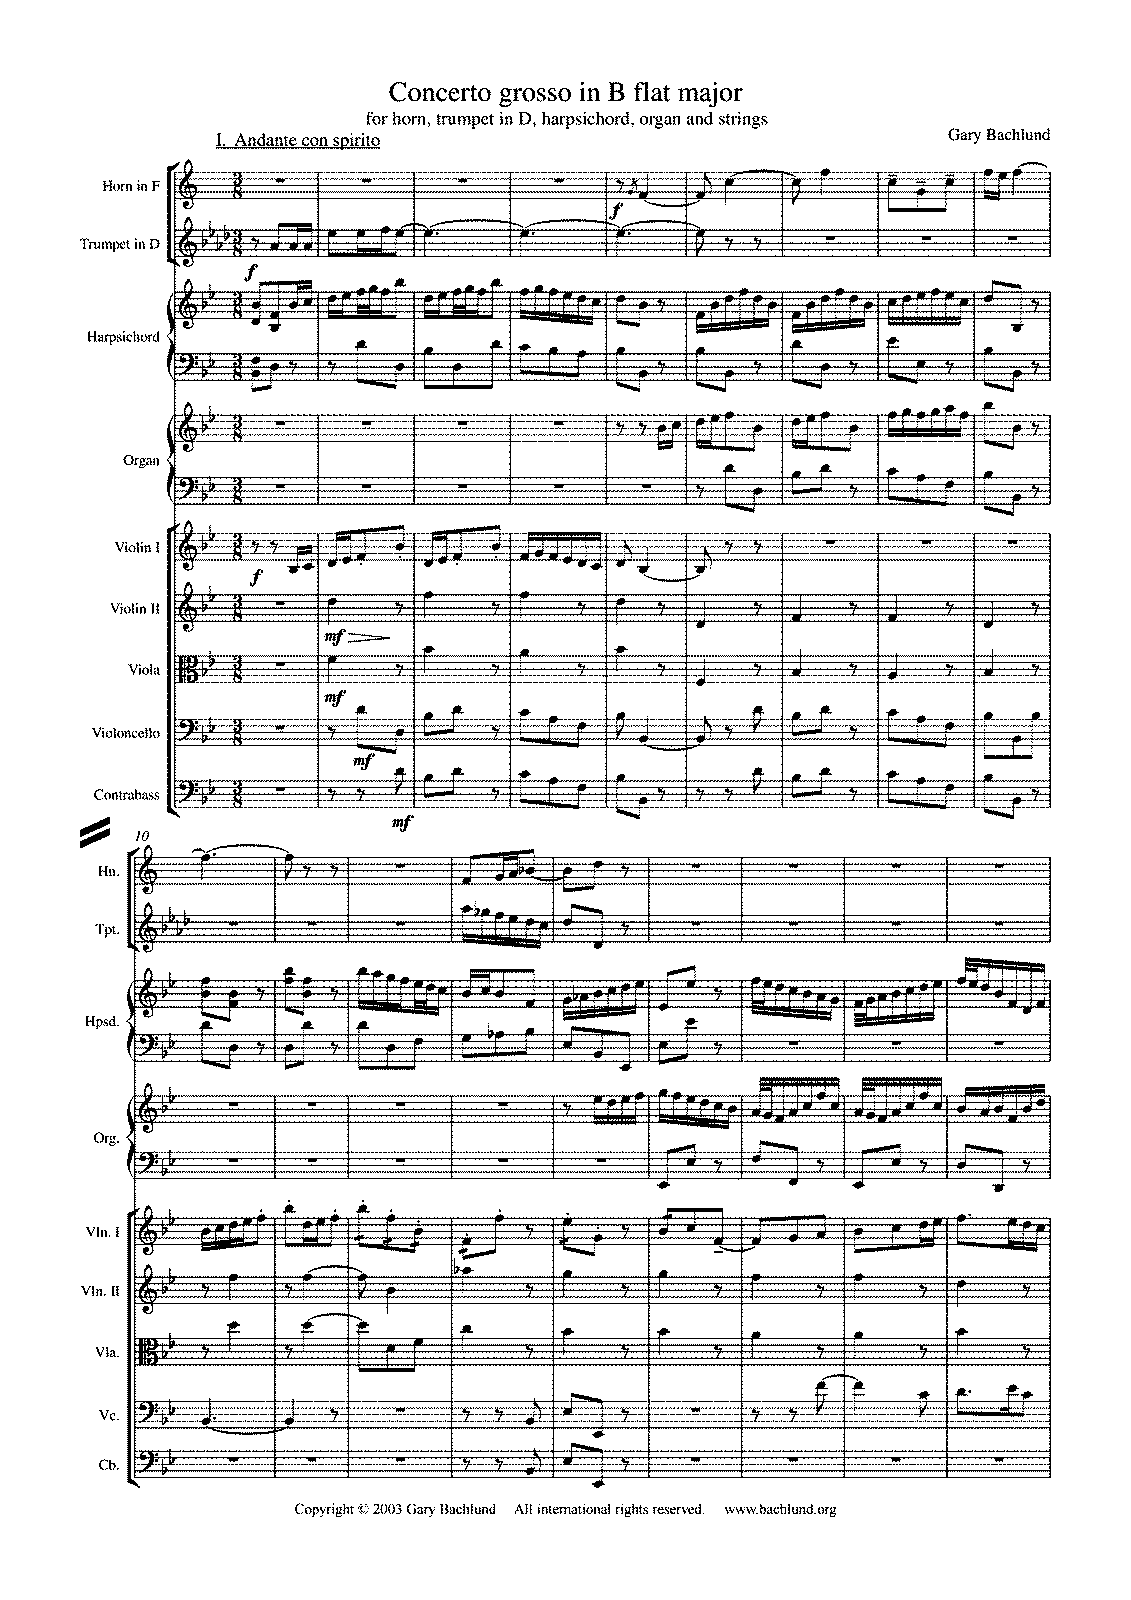 PMLP662757-Concerto grosso B flat major.pdf